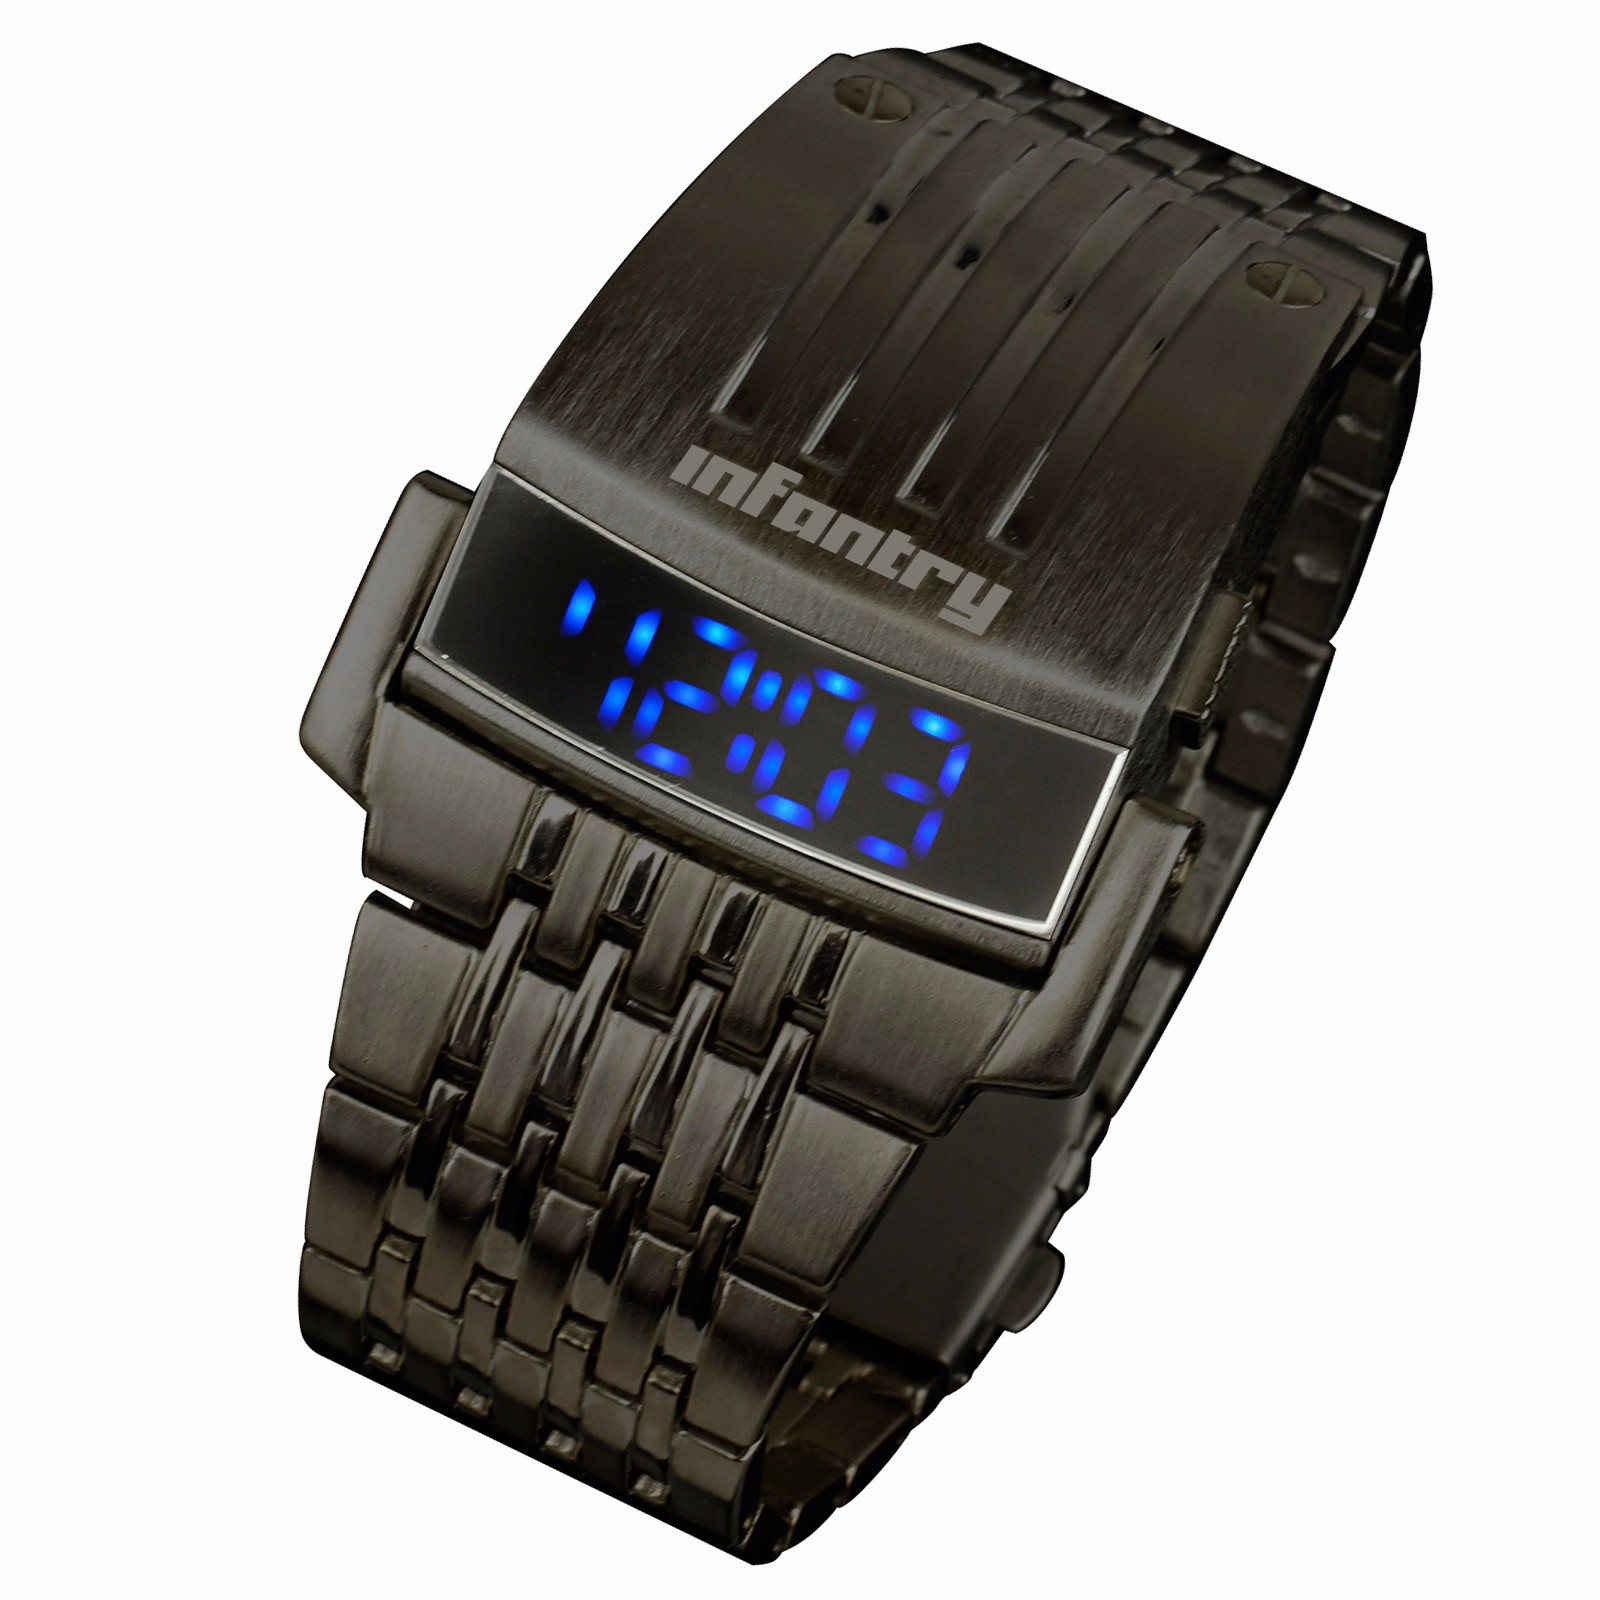 Blue-LED-Infantry-Mens-Digital-Date-Day-Military-Sports-Quartz-Wristwatch-Watch